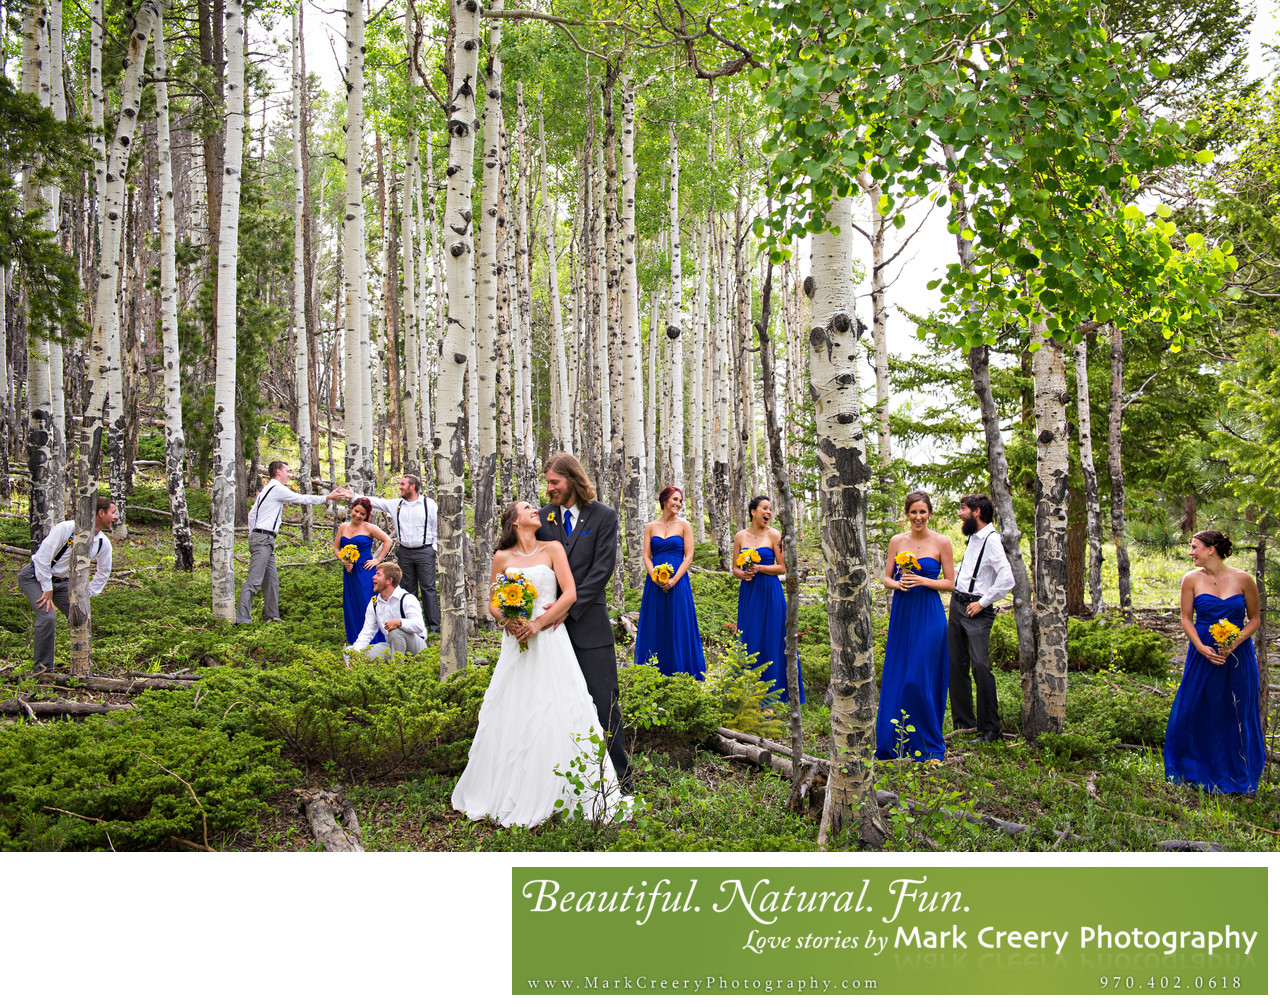 Cucina Rustica Vail Vail Wedding Deck Brinton Studios Vail Wedding Love Vail Wedding